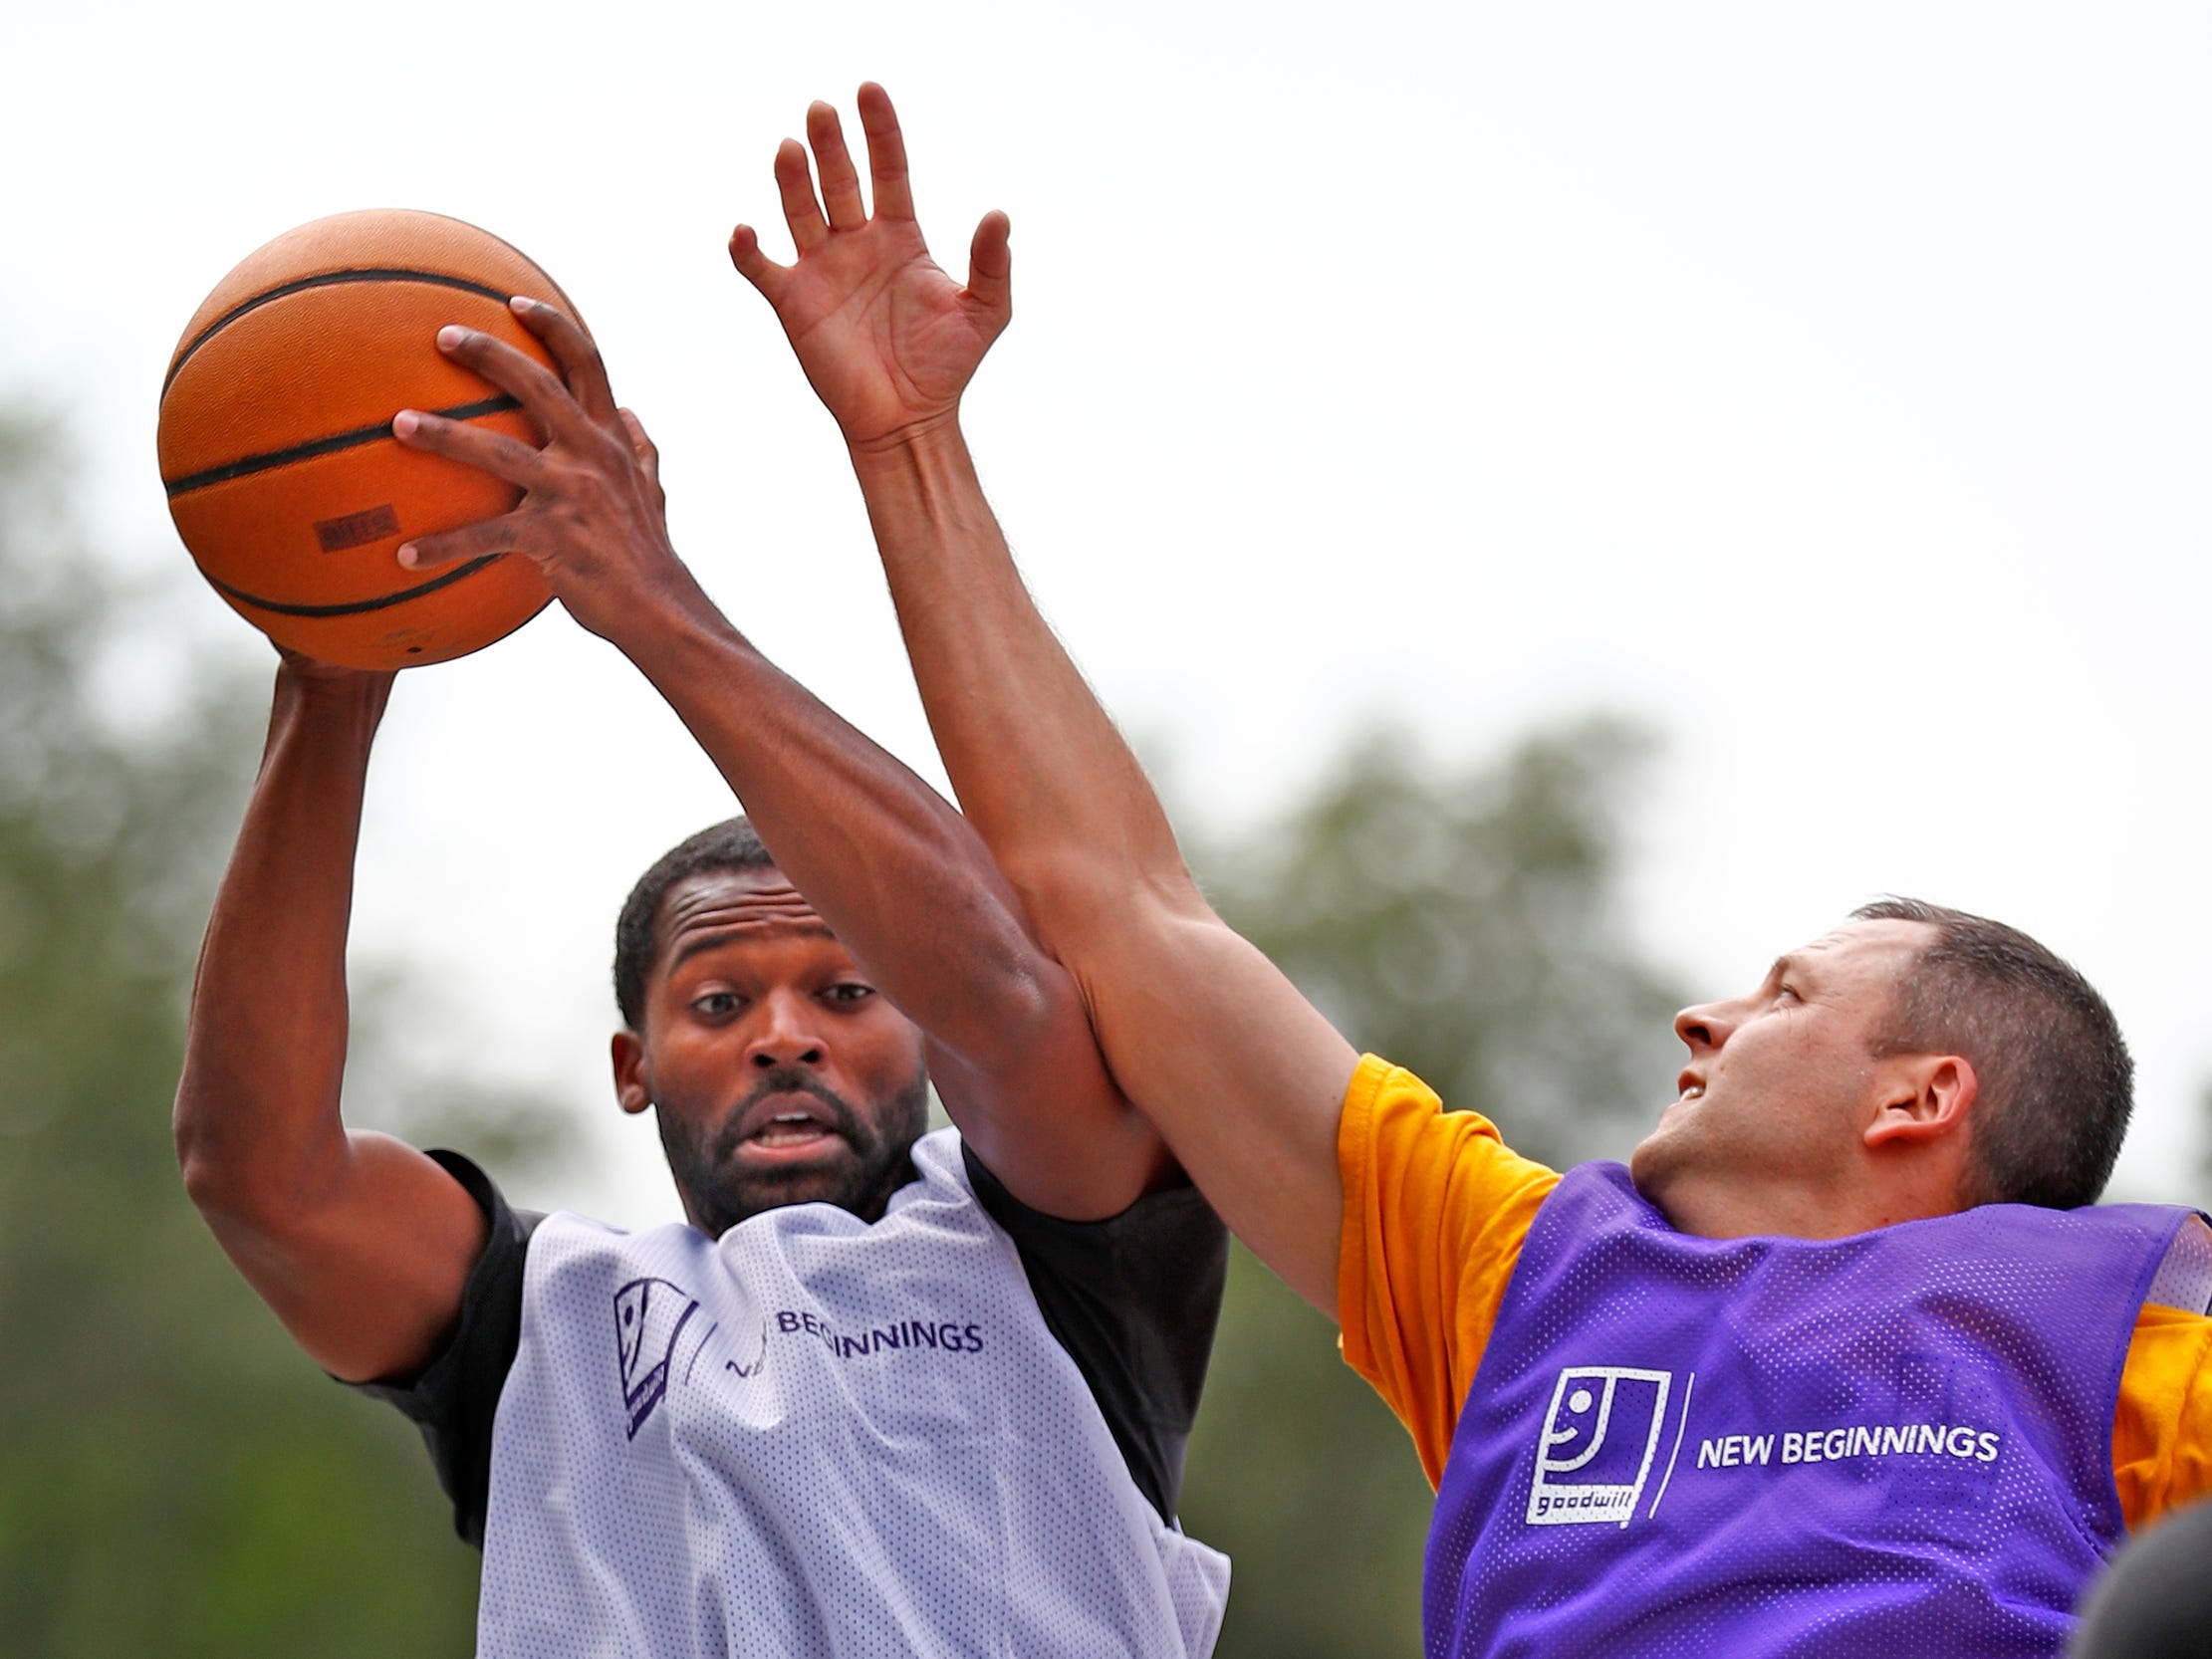 Taylor Hopkins, with Goodwill Guides, shoots past Eric Schlegel, Vice President for Goodwill Southern and Central Indiana Retail Division, during a basketball game at Goodwill Commercial Services, Wednesday, Sept. 19, 2018.  Goodwill Industries of Central Indiana's New Beginnings hosted the 3-on-3 basketball tournament bringing together participants in New Beginnings, a six-month re-entry program for ex-offenders that works on job and life skills, with representatives from Goodwill, IMPD, the Mayor's office, Marion County Probation department and other services.  The goal is to celebrate the New Beginnings program while breaking down re-entry barriers through basketball.